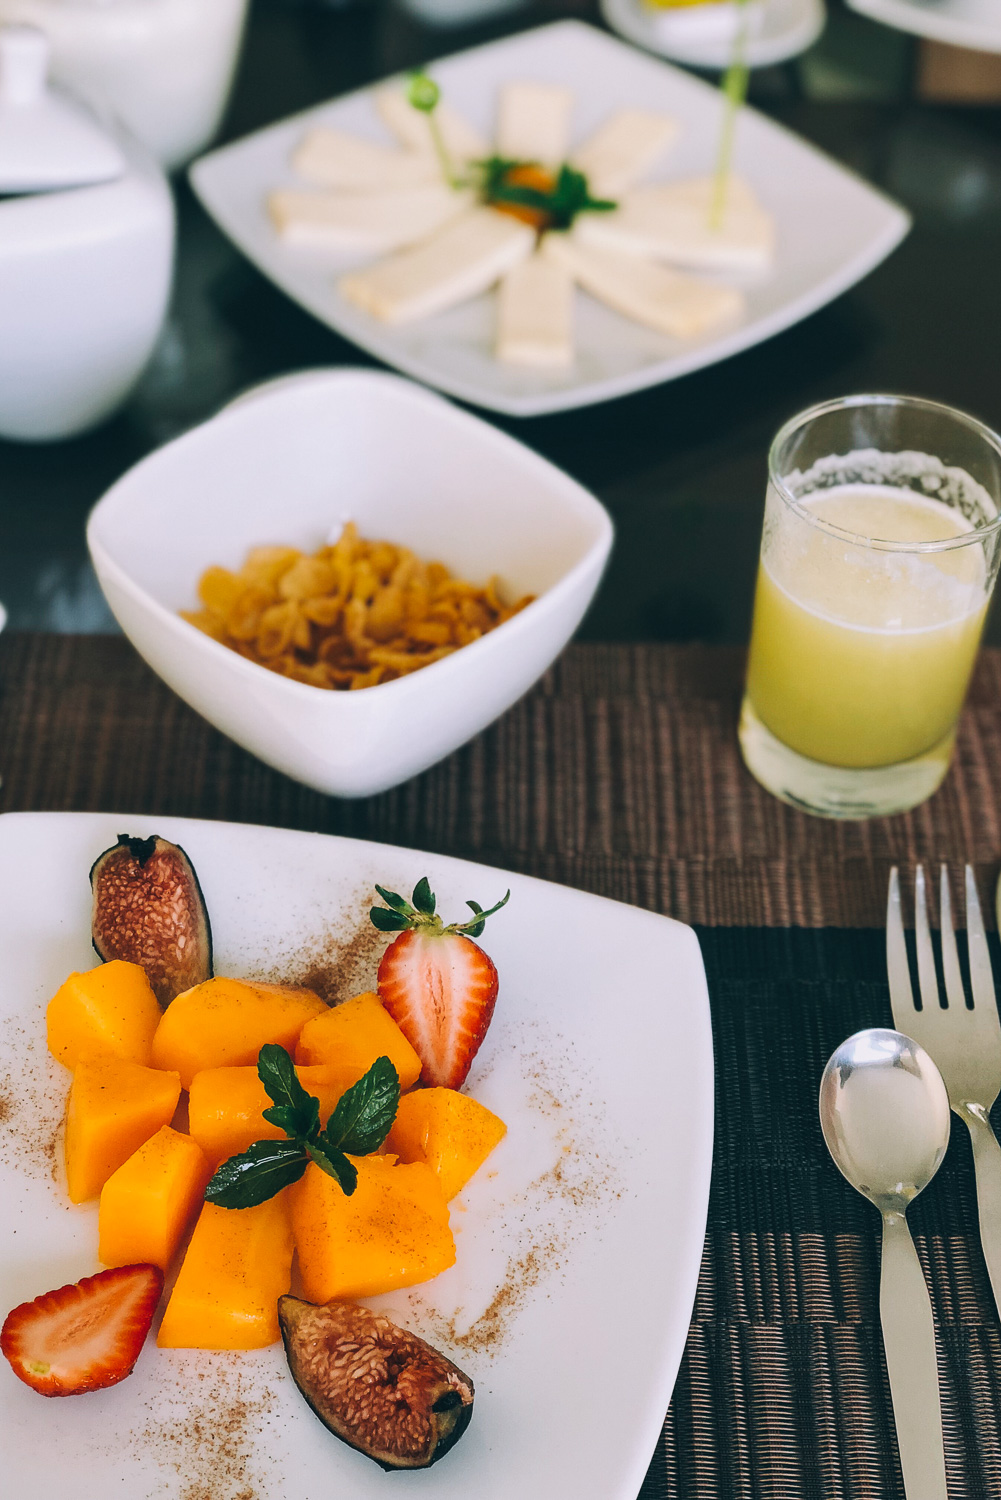 """Breakfast at Beausejour Boutique Hotel Arequipa, Peru. Travel photography and guide by © Natasha Lequepeys for """"And Then I Met Yoko"""". #peru #photoblog #fujifilm"""